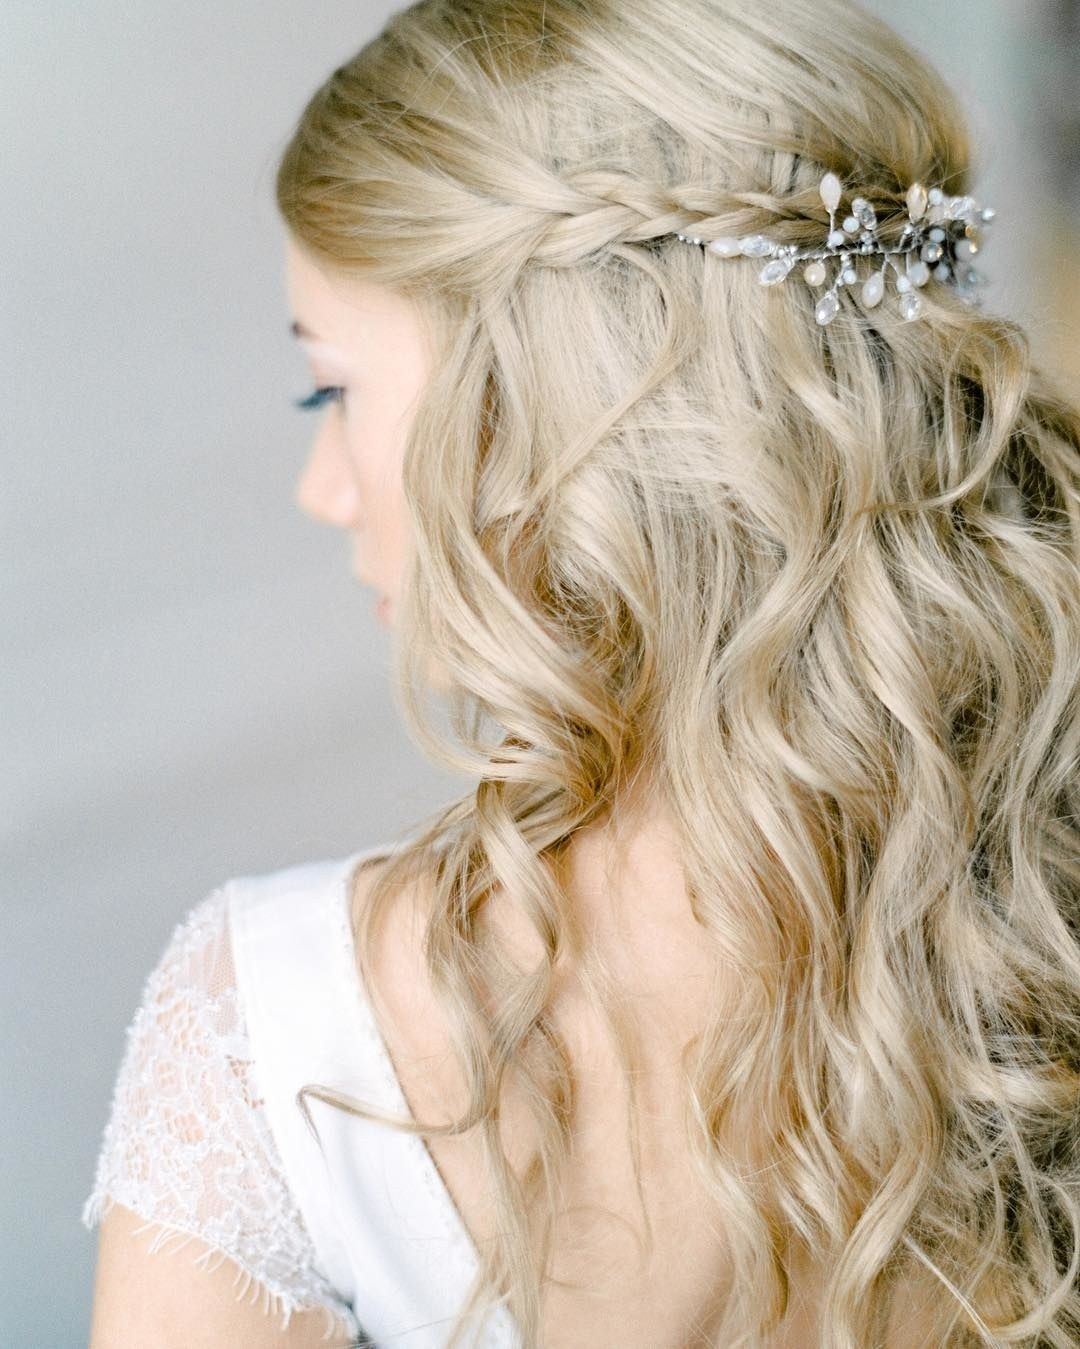 Need Bridal Hair Inspiration We Have You Covered: Half-Up, Half-Down Wedding Hairstyles For Every Type Of